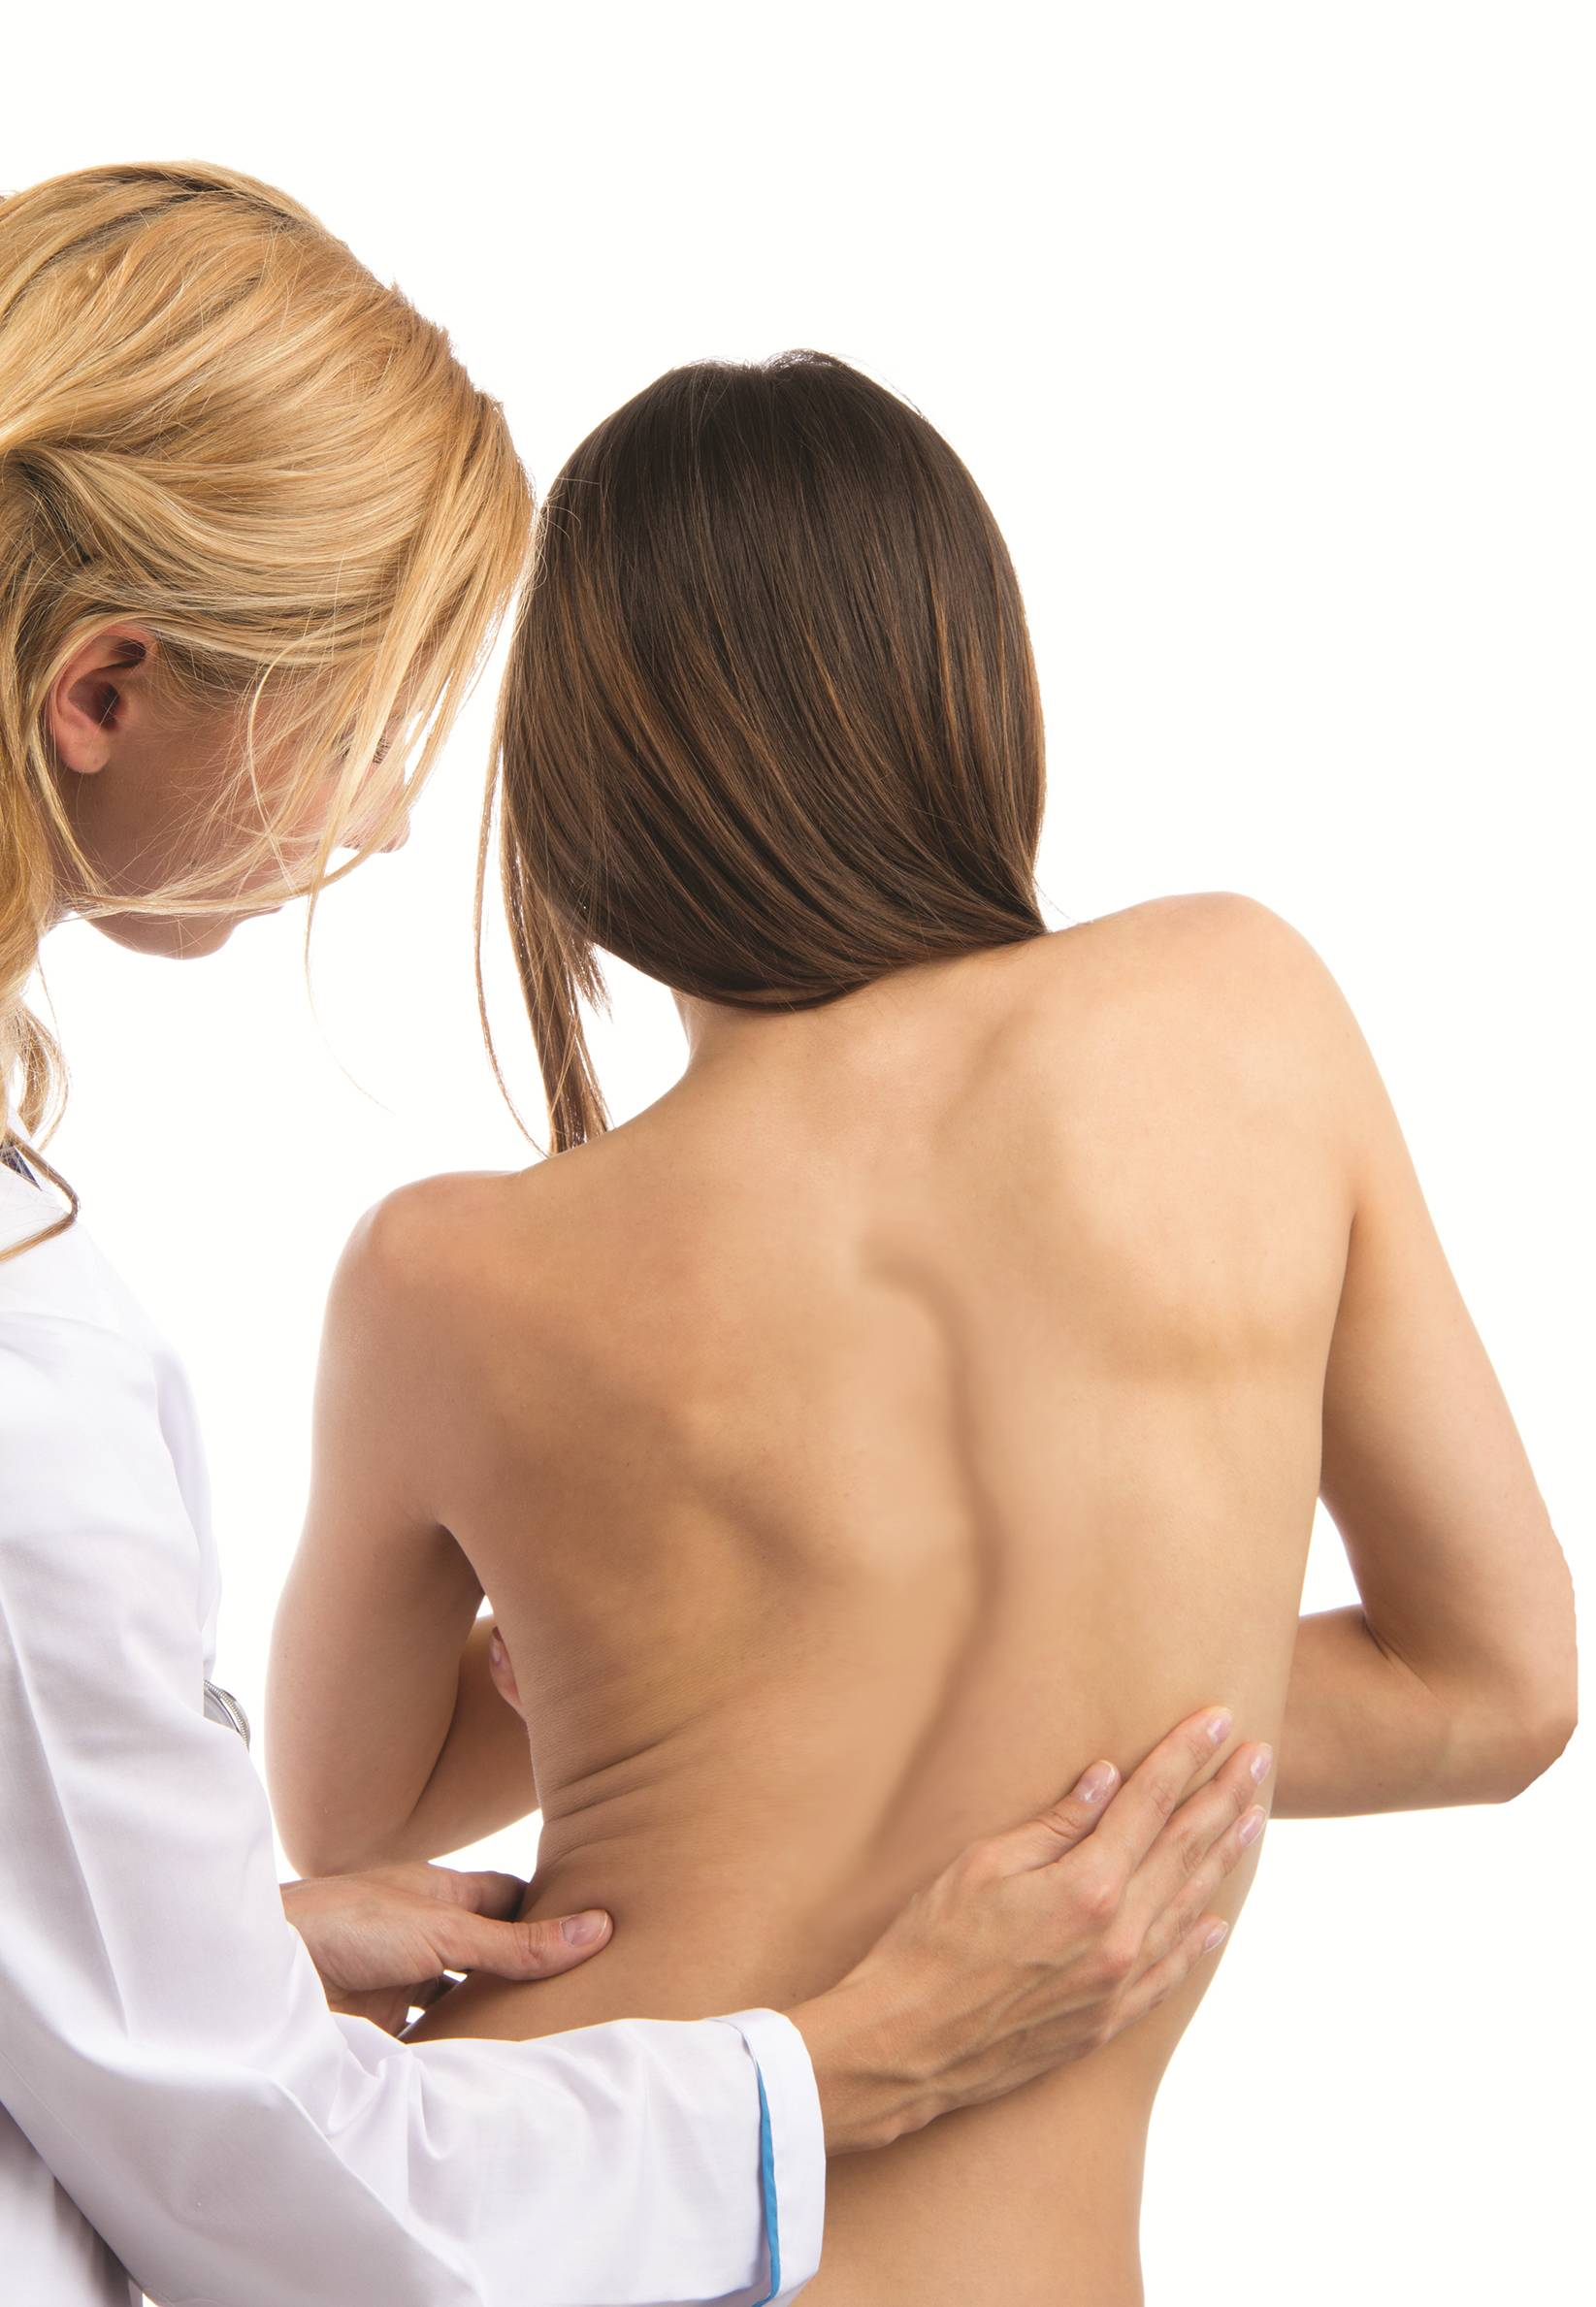 Spine-check-aligned-chiropractic